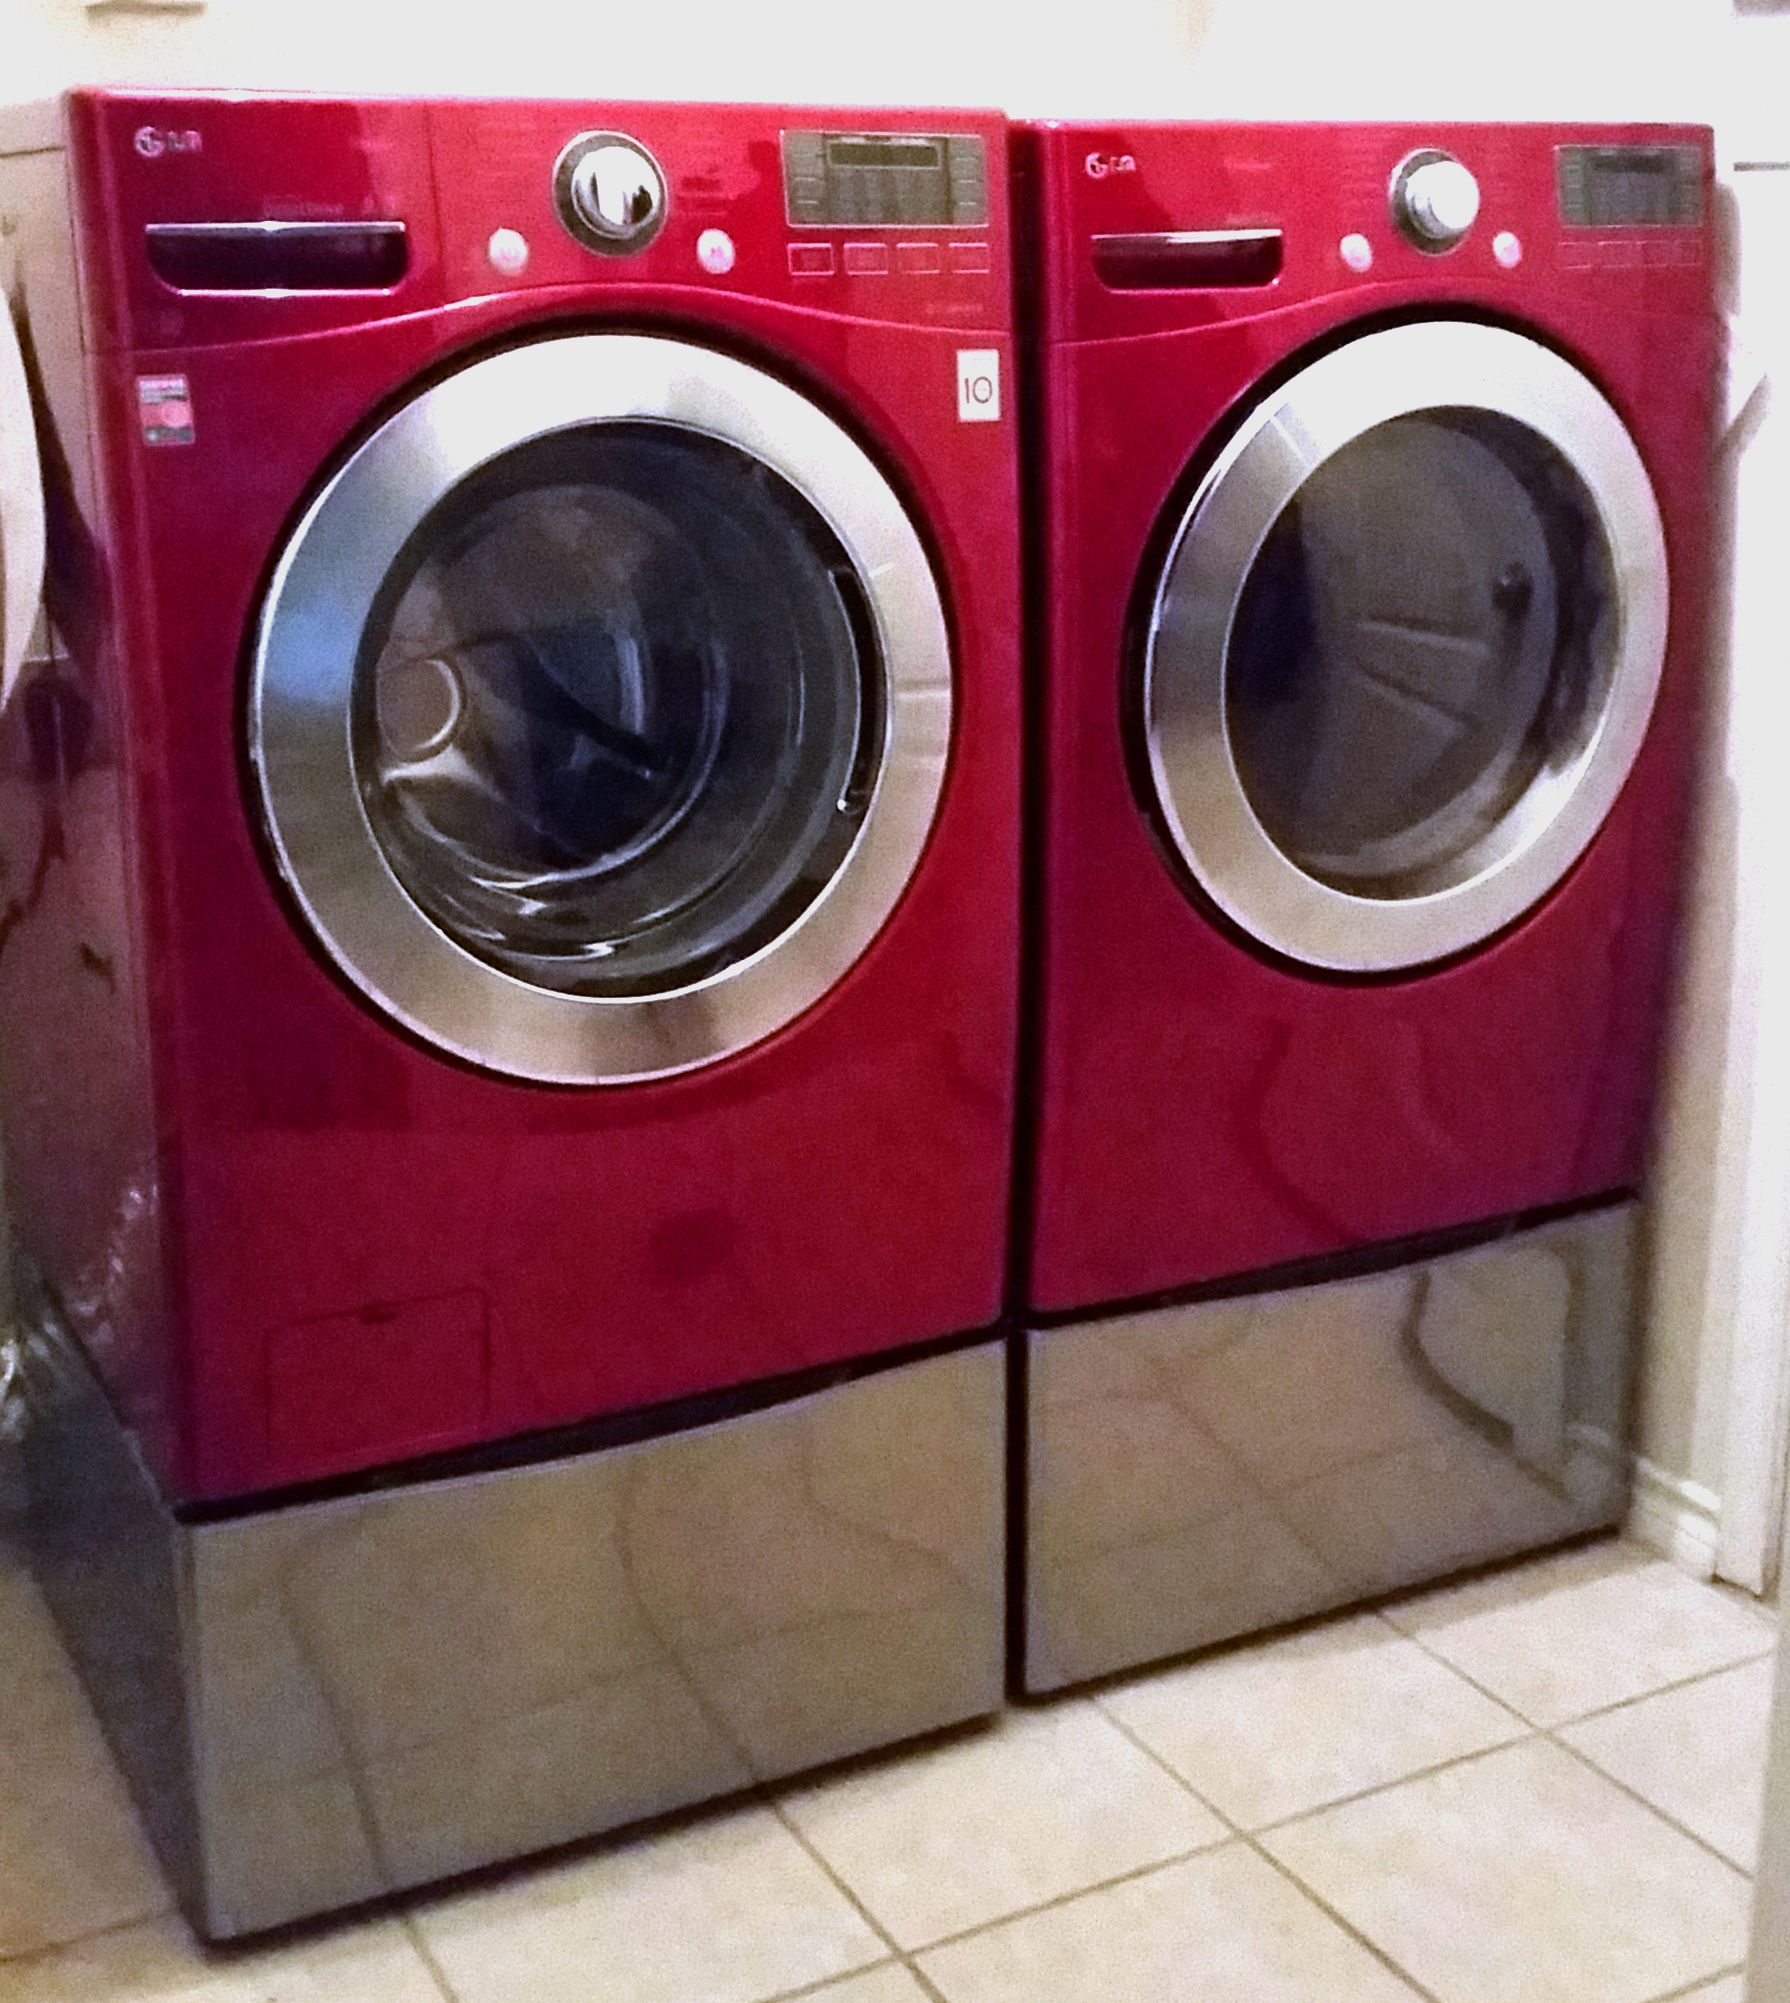 Cherry Red Lg Washer And Dryer With Graphite Pedestals Laundry Pedestal Laundry Red Washer And Dryer